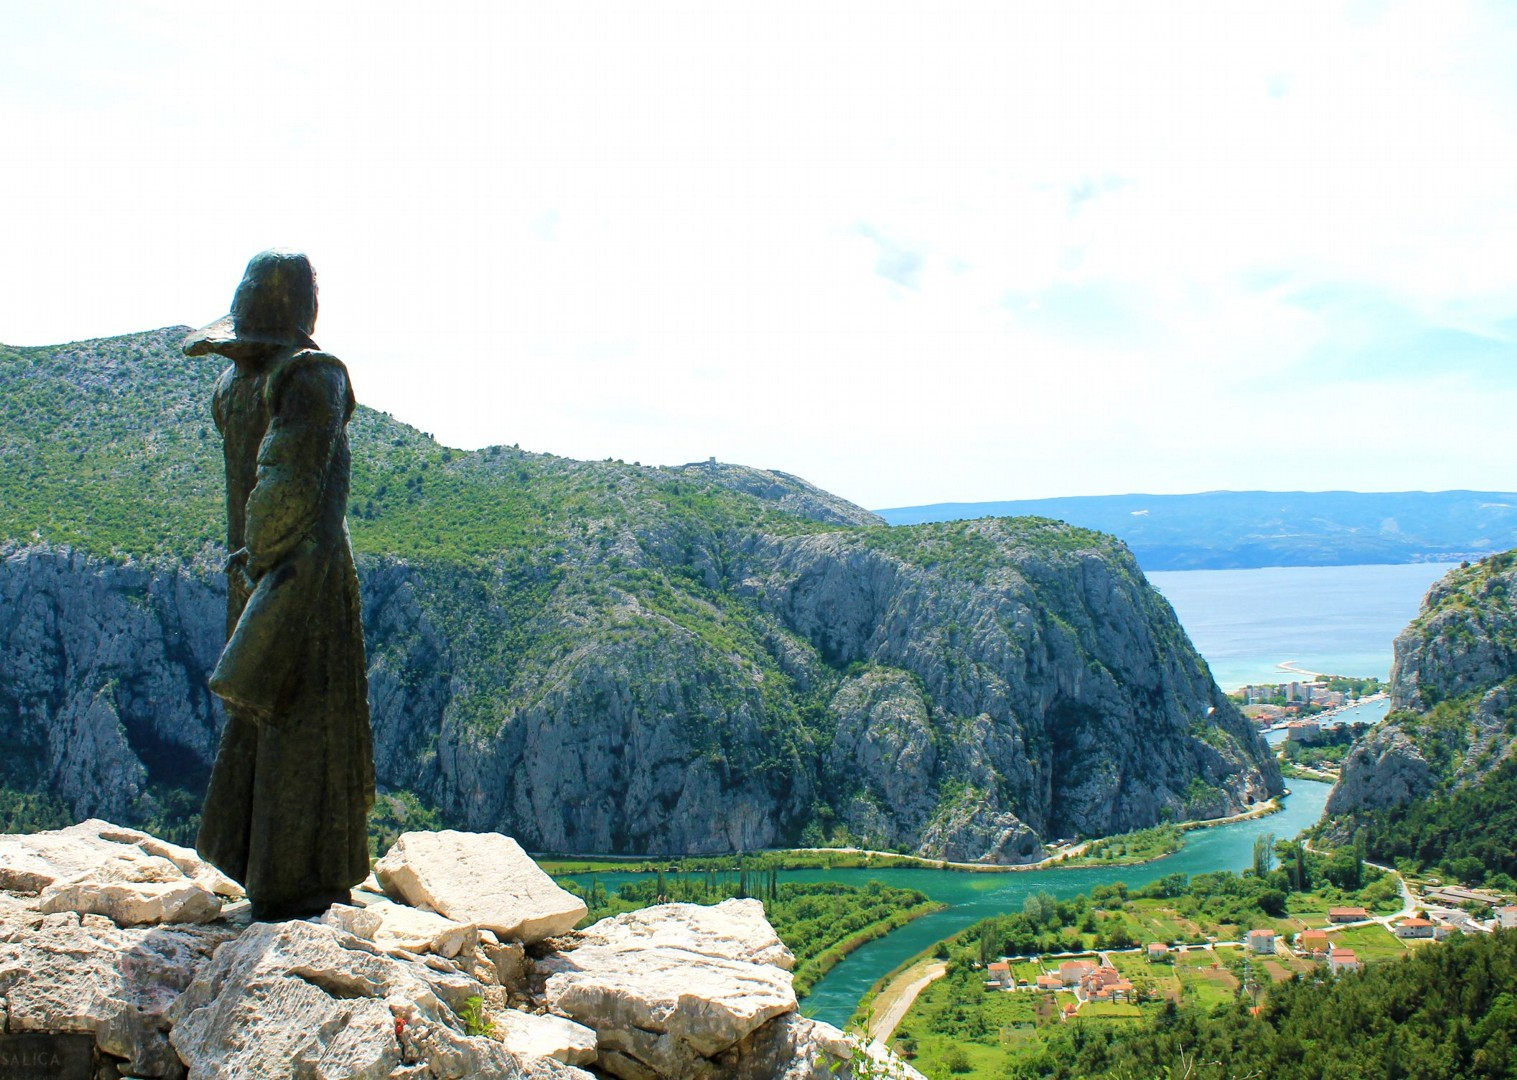 explore-cypress-gardens-of-korcula-cycling-trip.jpg - Croatia - Southern Dalmatia - Bike and Boat Holiday - Leisure Cycling